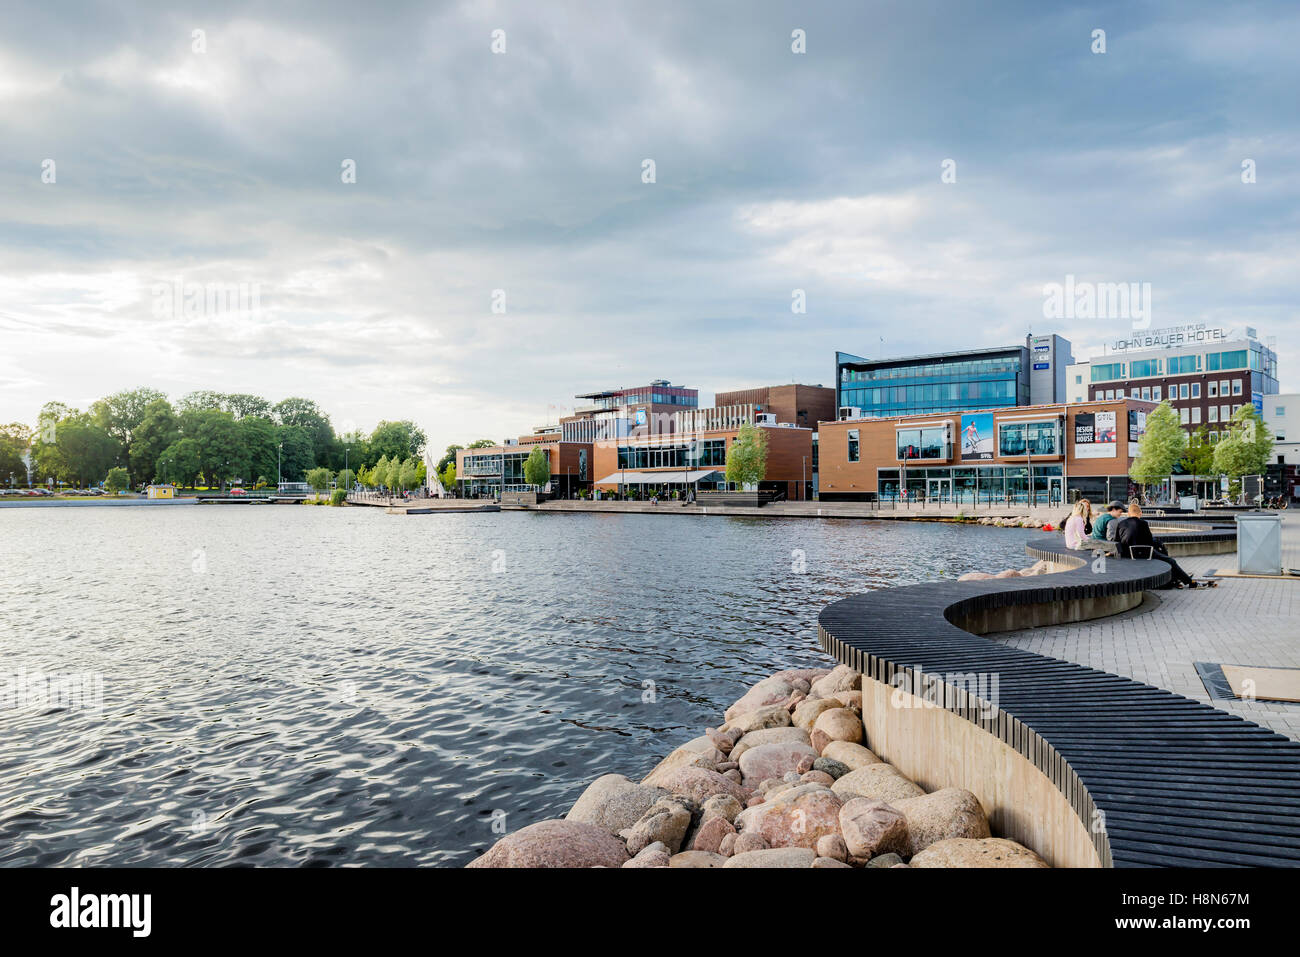 Sweden, Smaland, Jonkoping, Overcast sky above waterfront district - Stock Image